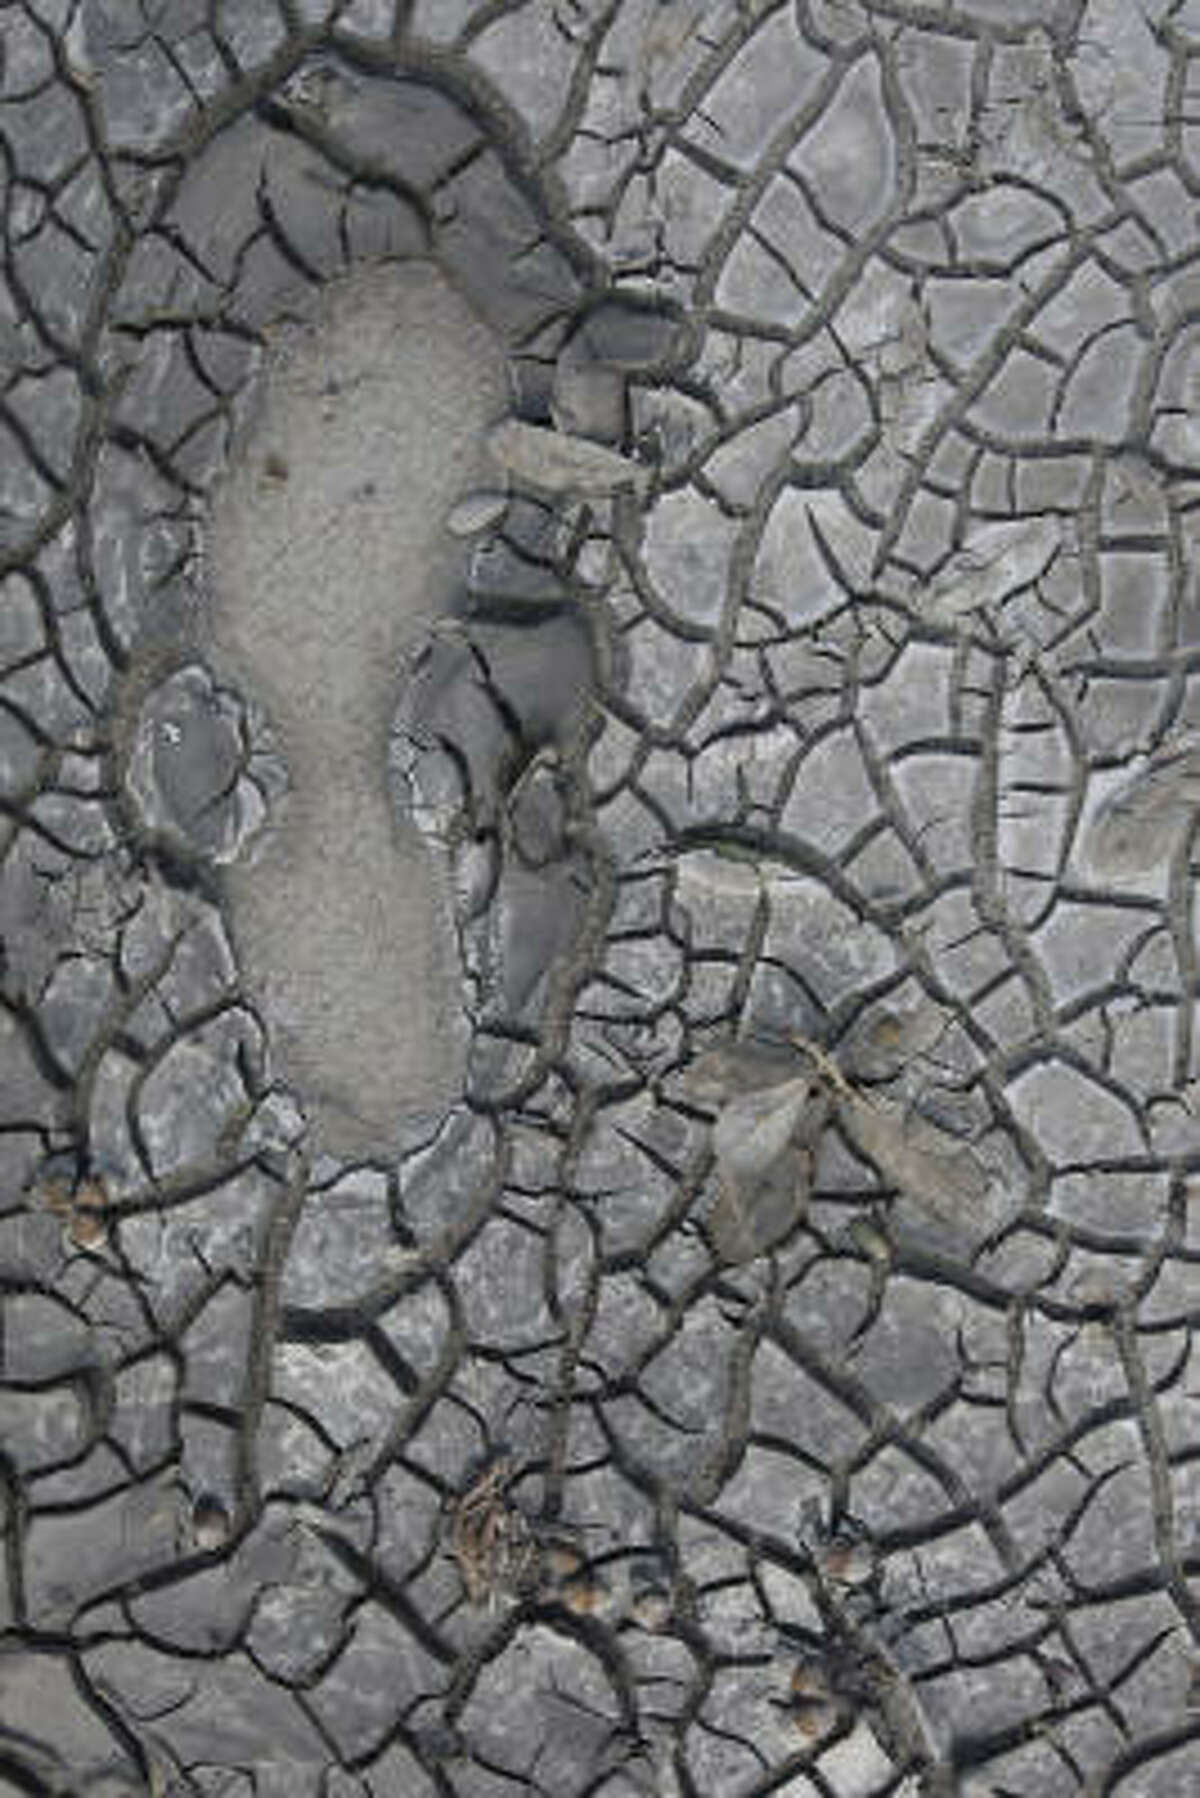 A footprint is embedded in the drying mud along sidewalk on Market Street near downtown Galveston in the aftermath of Hurricane Ike Thursday.